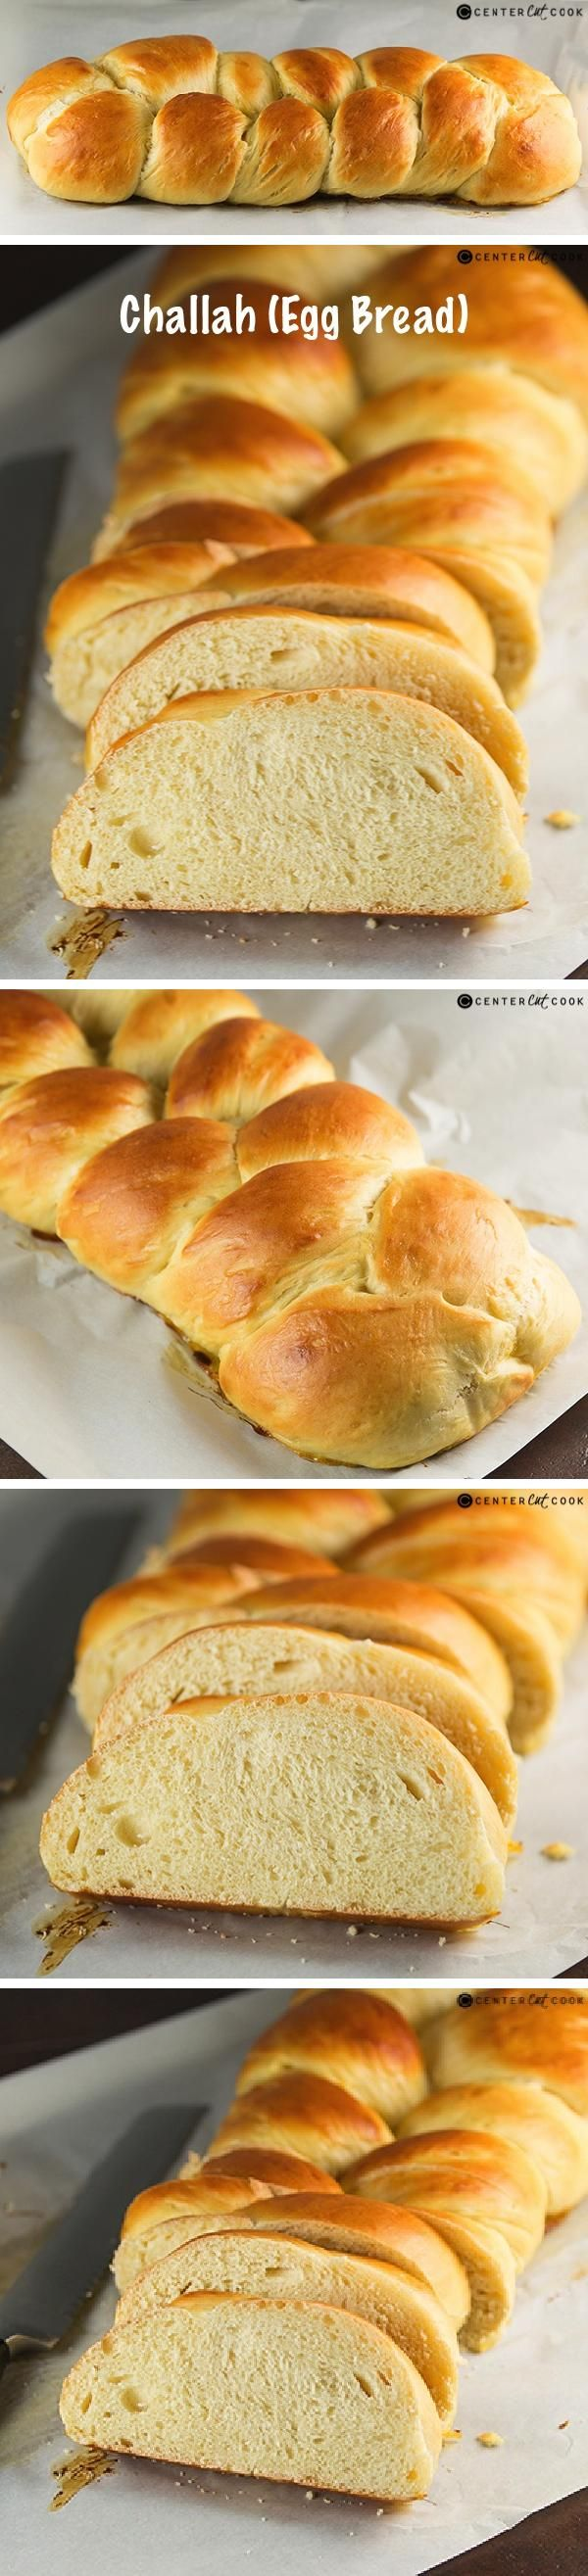 Challah (Egg Bread)! This recipe for Challah, also know as egg bread, is delicious in its own right but it also makes the most phenomenal french toast, french toast casserole, or bread pudding! No bread machine is required for this recipe!